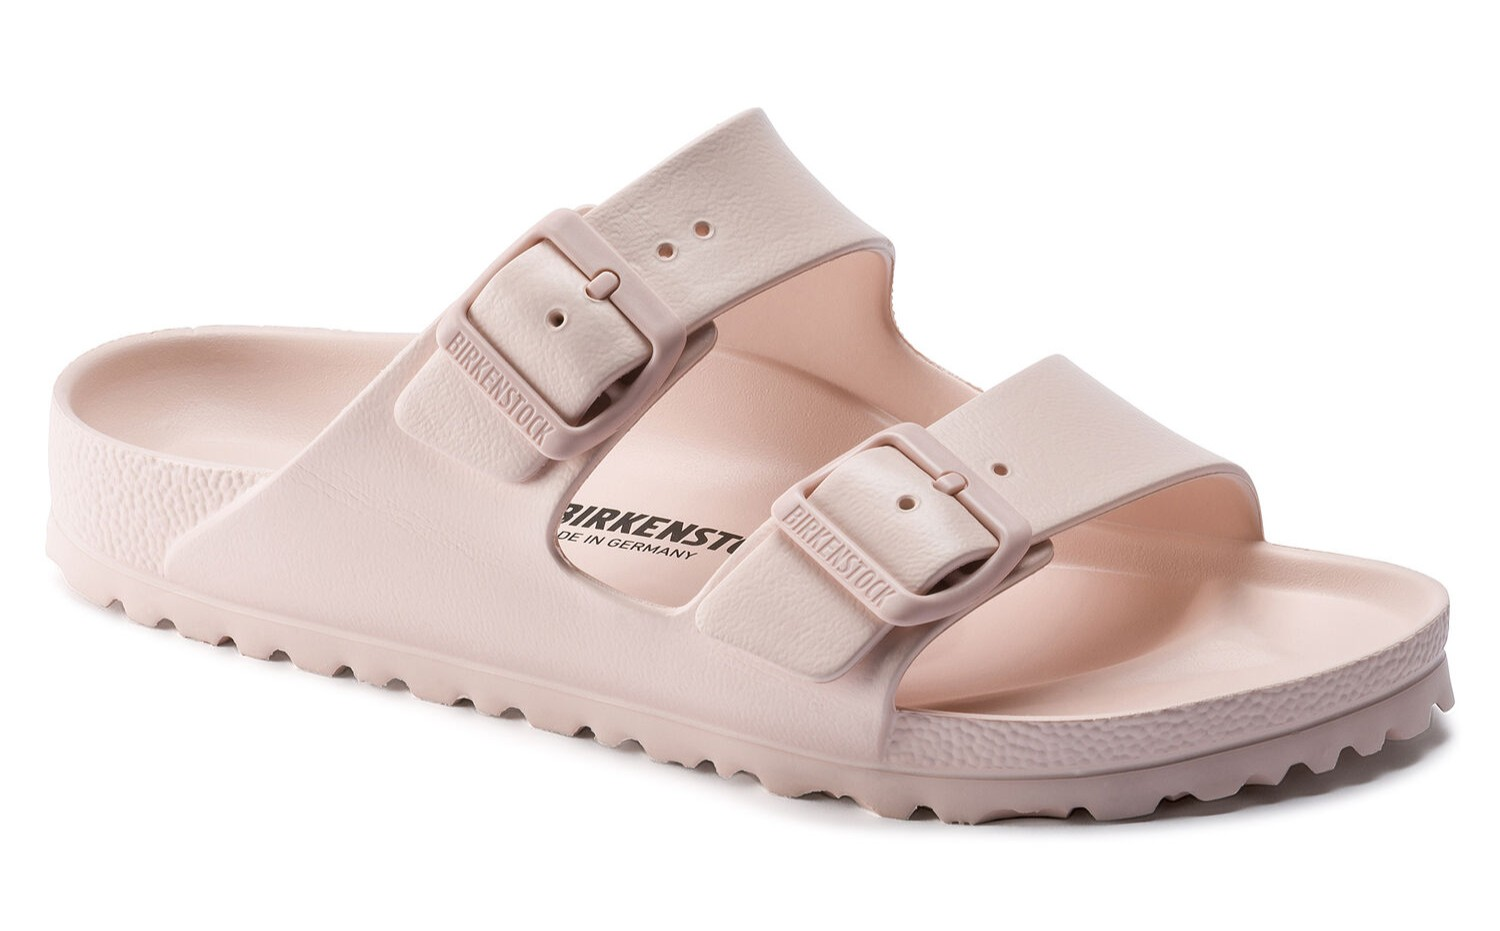 Birkenstock to be acquired by L Catterton